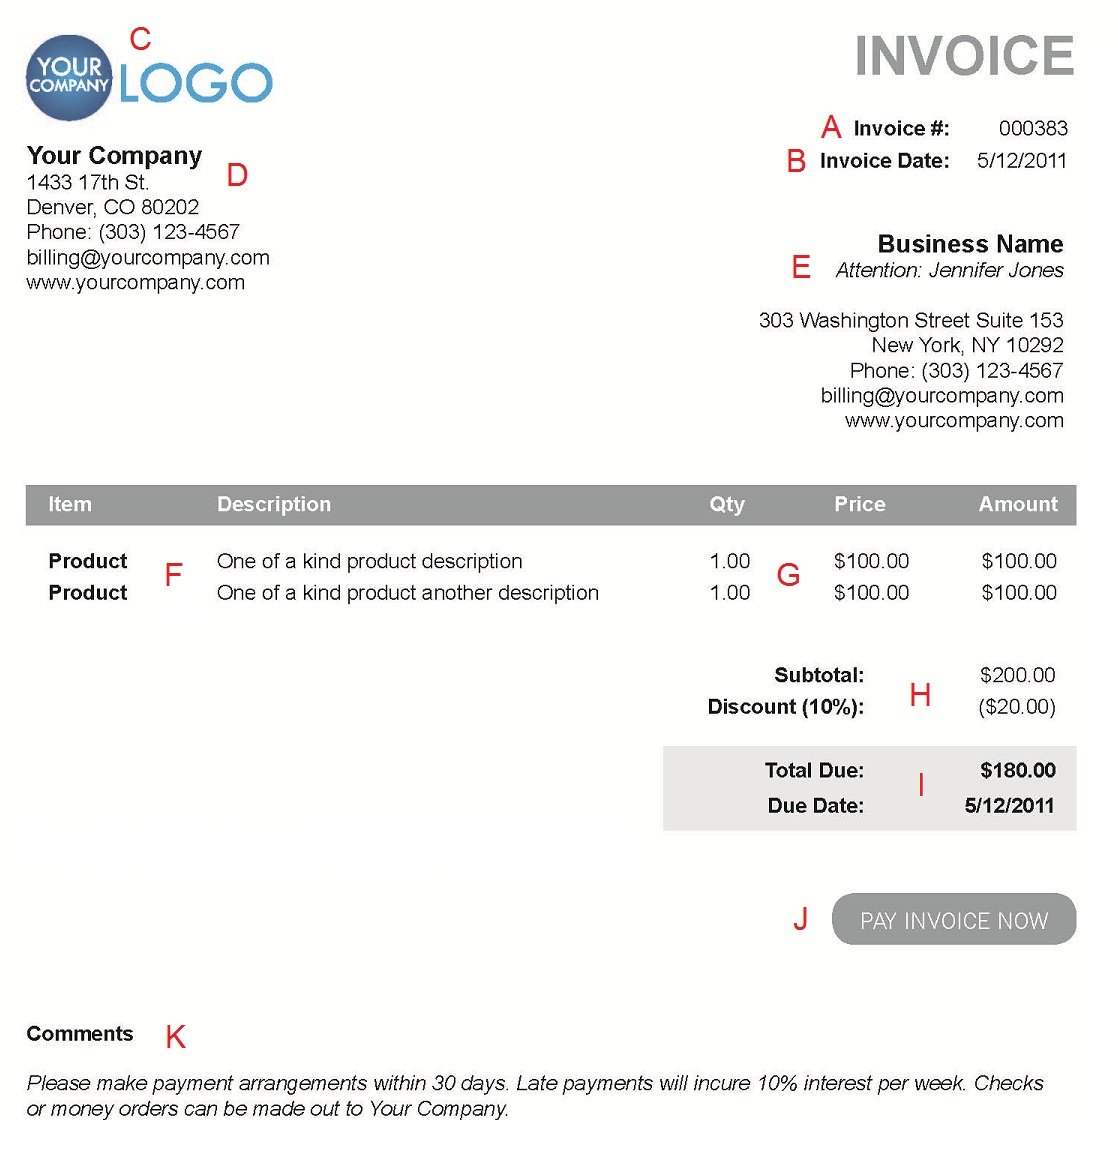 Ultrablogus  Marvelous The  Different Sections Of An Electronic Payment Invoice With Engaging A  With Comely Acknowledge Receipt Of Your Email Also Official Receipt Form In Addition Pumpkin Soup Receipt And Generate Receipt Online As Well As Moving Receipt Template Additionally Proforma Receipt From Paysimplecom With Ultrablogus  Engaging The  Different Sections Of An Electronic Payment Invoice With Comely A  And Marvelous Acknowledge Receipt Of Your Email Also Official Receipt Form In Addition Pumpkin Soup Receipt From Paysimplecom